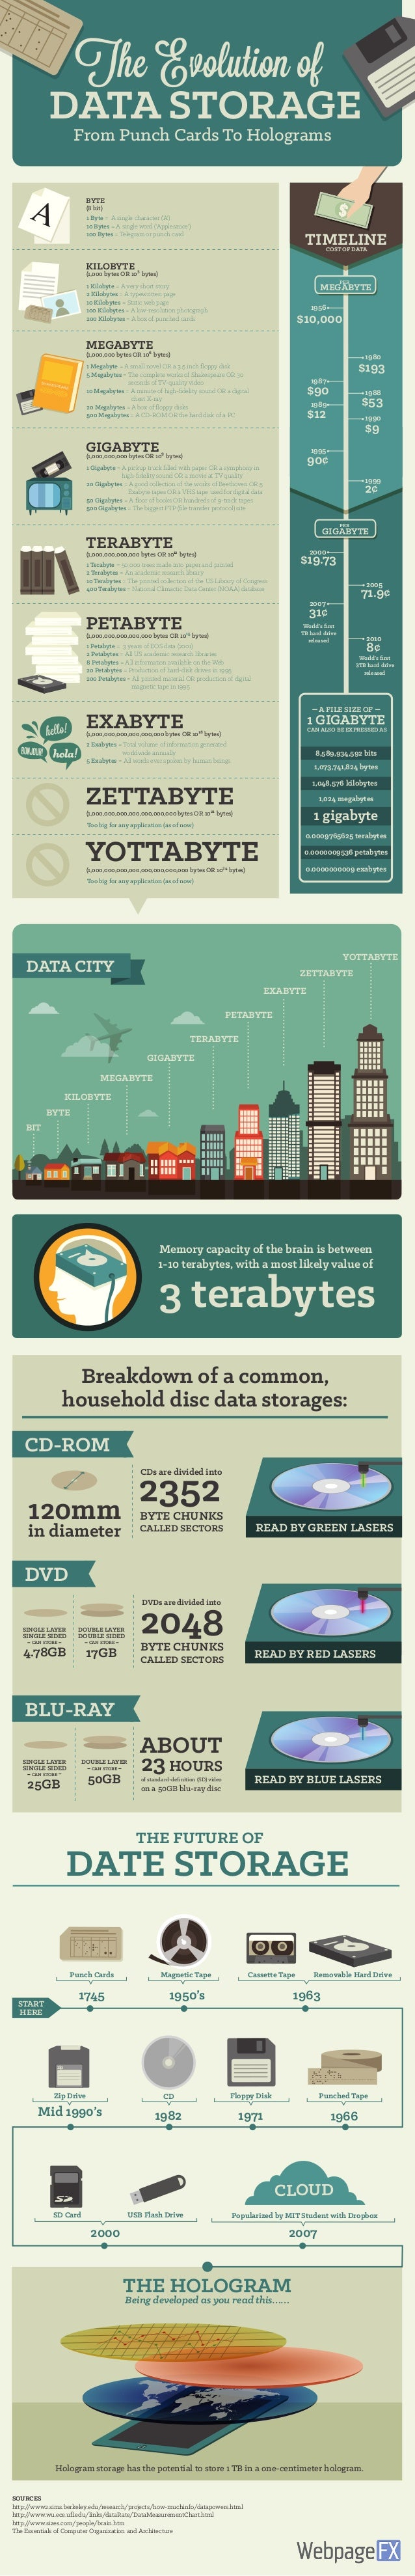 History of data storage: Infographic